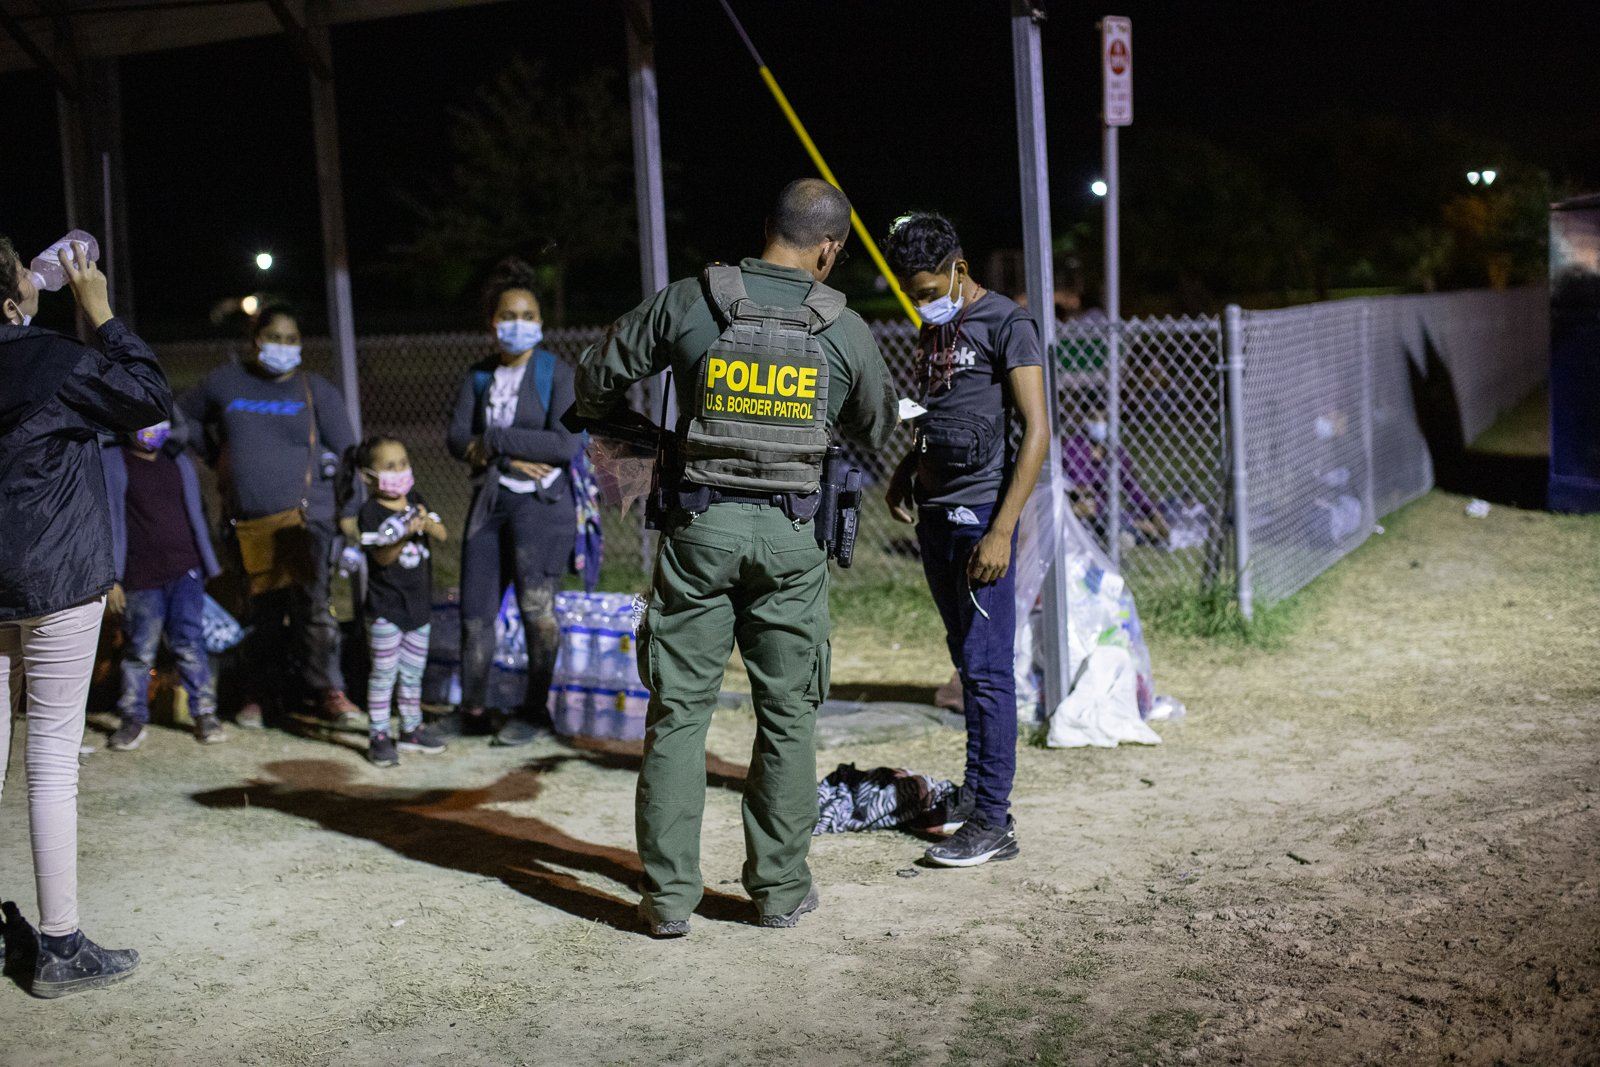 Some migrants traveling in a group consisting of only men attempted to avoid law enforcement officials after illegally entering the U.S. by running into bushes told Border Patrol agents they were 17 years old after they were apprehended near La Joya, Texas on August 7, 2021. (Kaylee Greenlee – Daily Caller News Foundation)